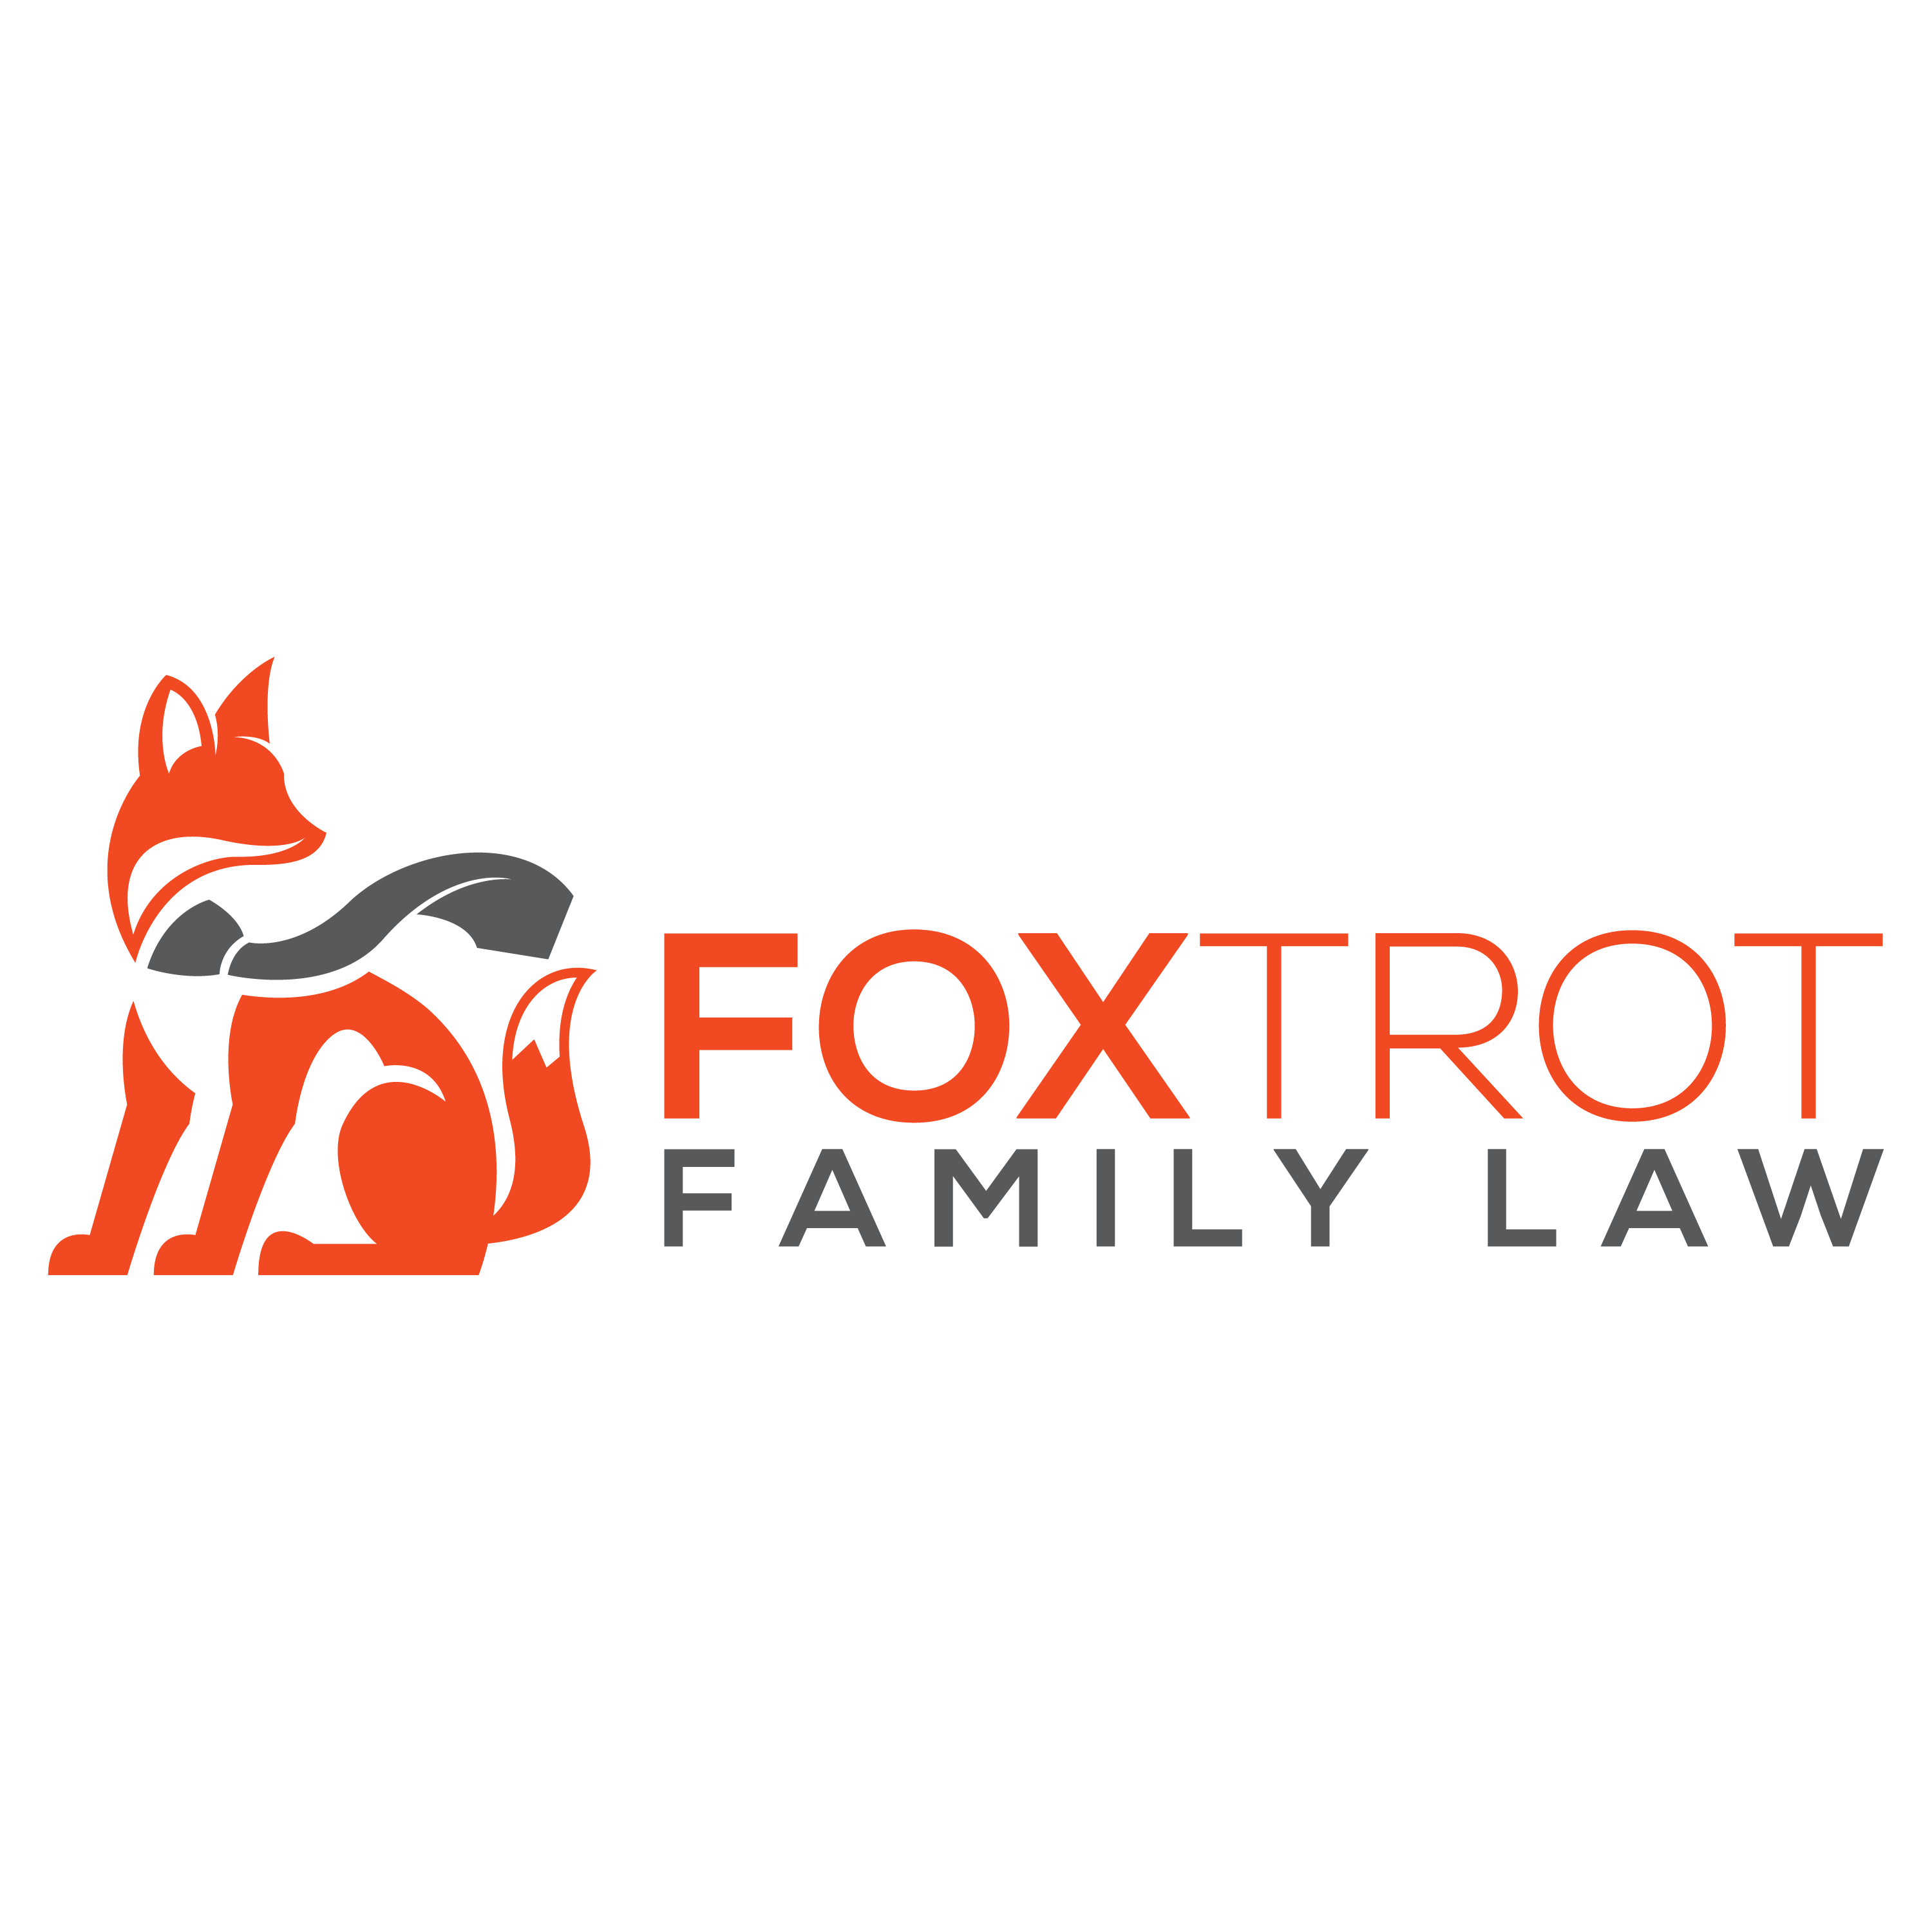 Design clear and fun fox-themed logo for Foxtrot Family Law